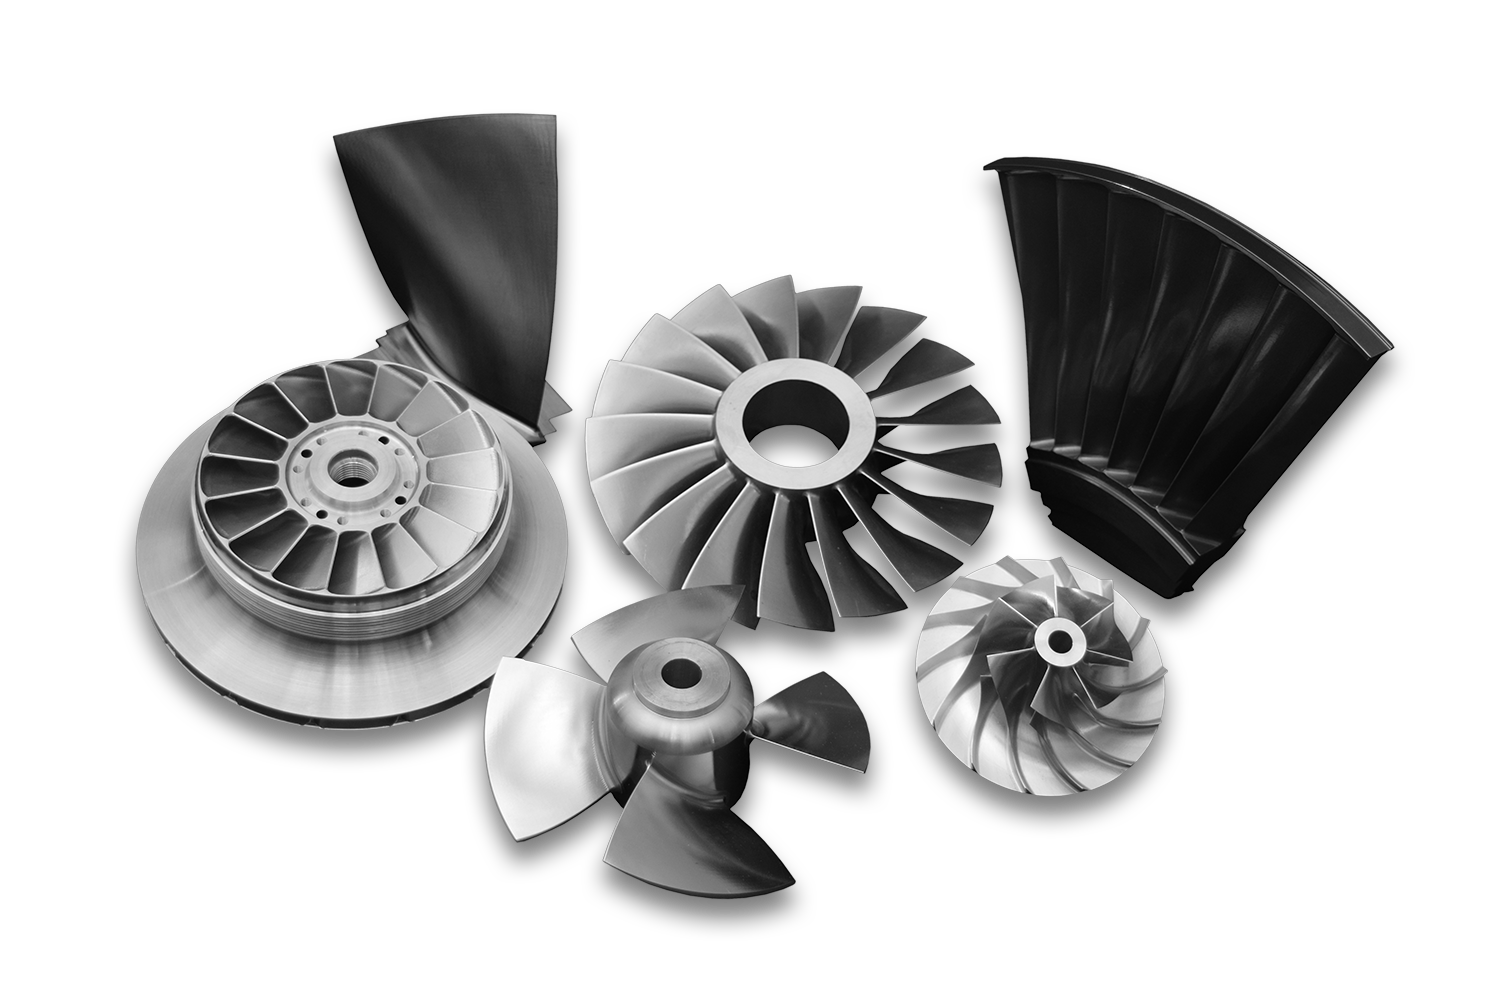 Examples of Parts Designed and Manufactured by Concepts NREC